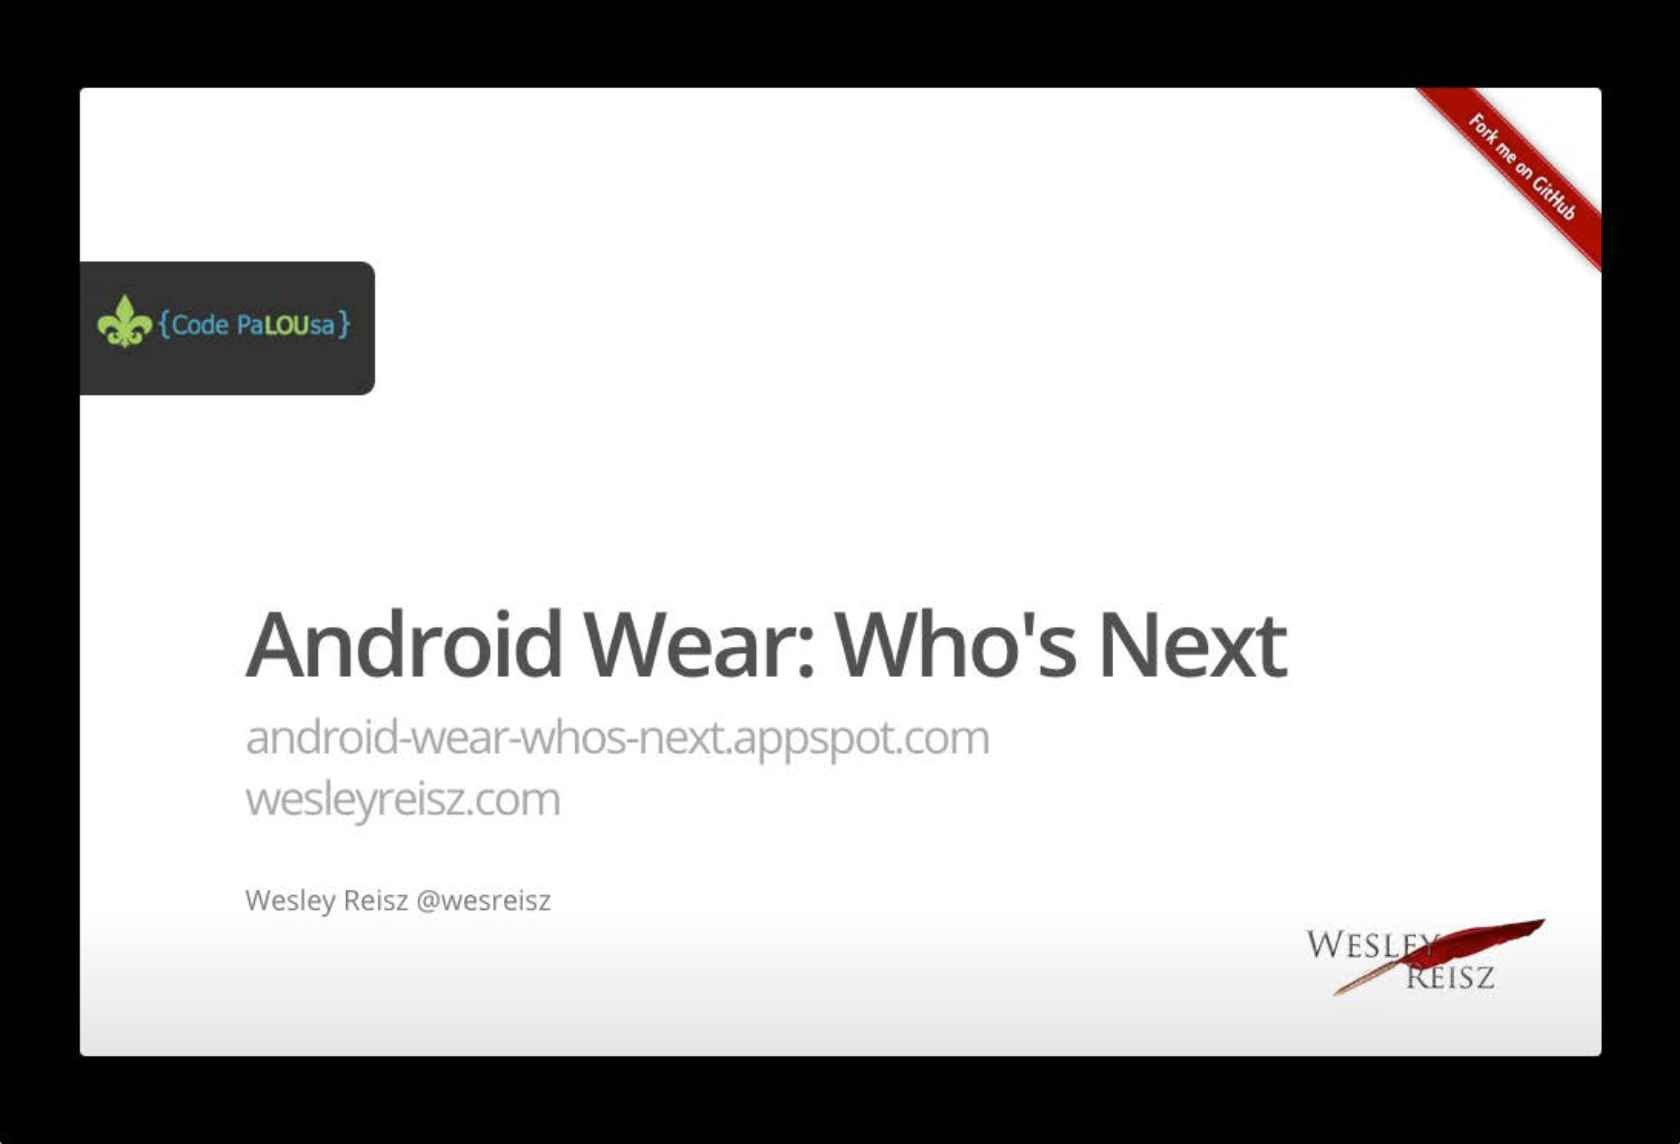 Android Wear: Who's Next